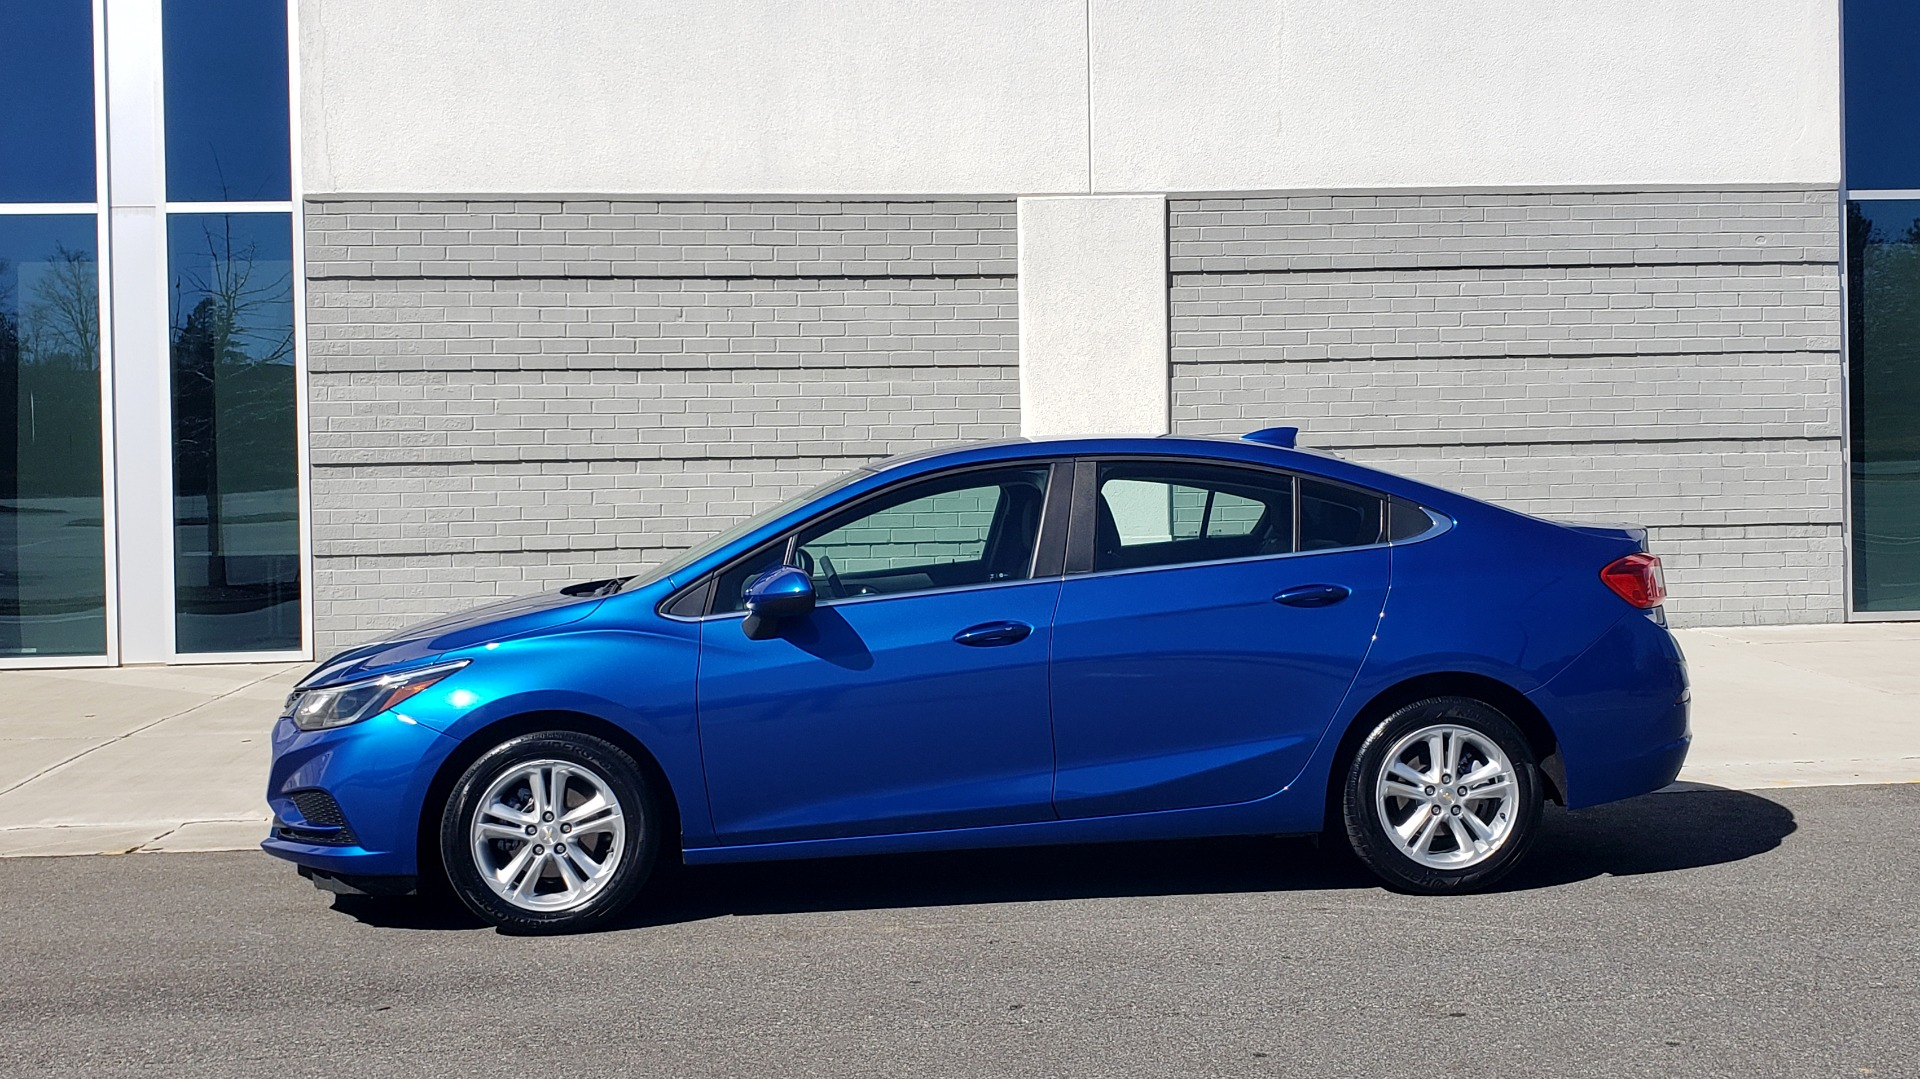 Used 2017 Chevrolet CRUZE LT 1.4L 1SD / 6-SPD AUTO / HTS STS / REMOTE START / REARVIEW for sale $11,495 at Formula Imports in Charlotte NC 28227 2